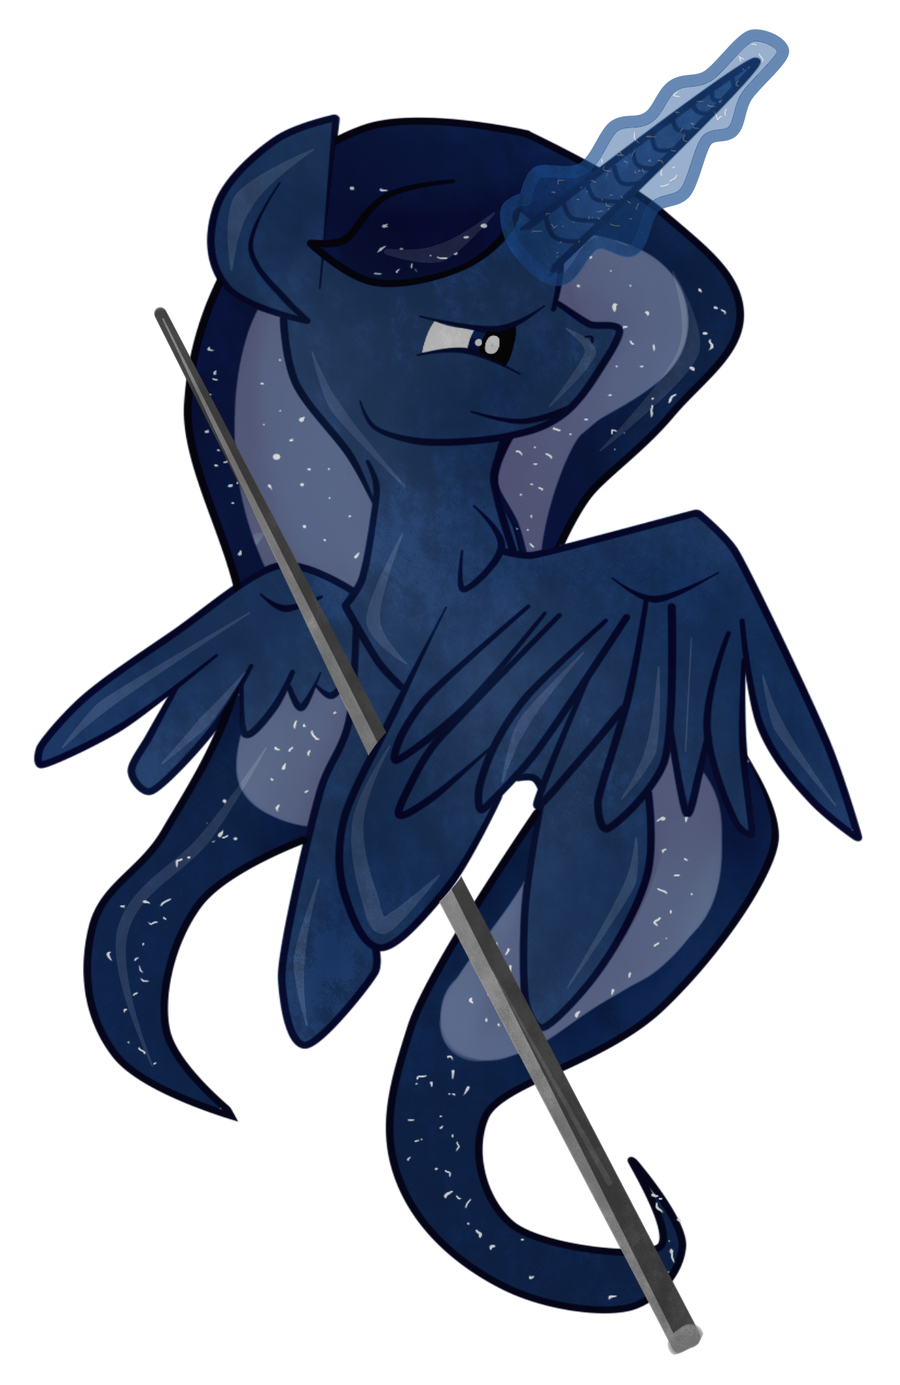 The Princess of the night by ToxicKittyCat